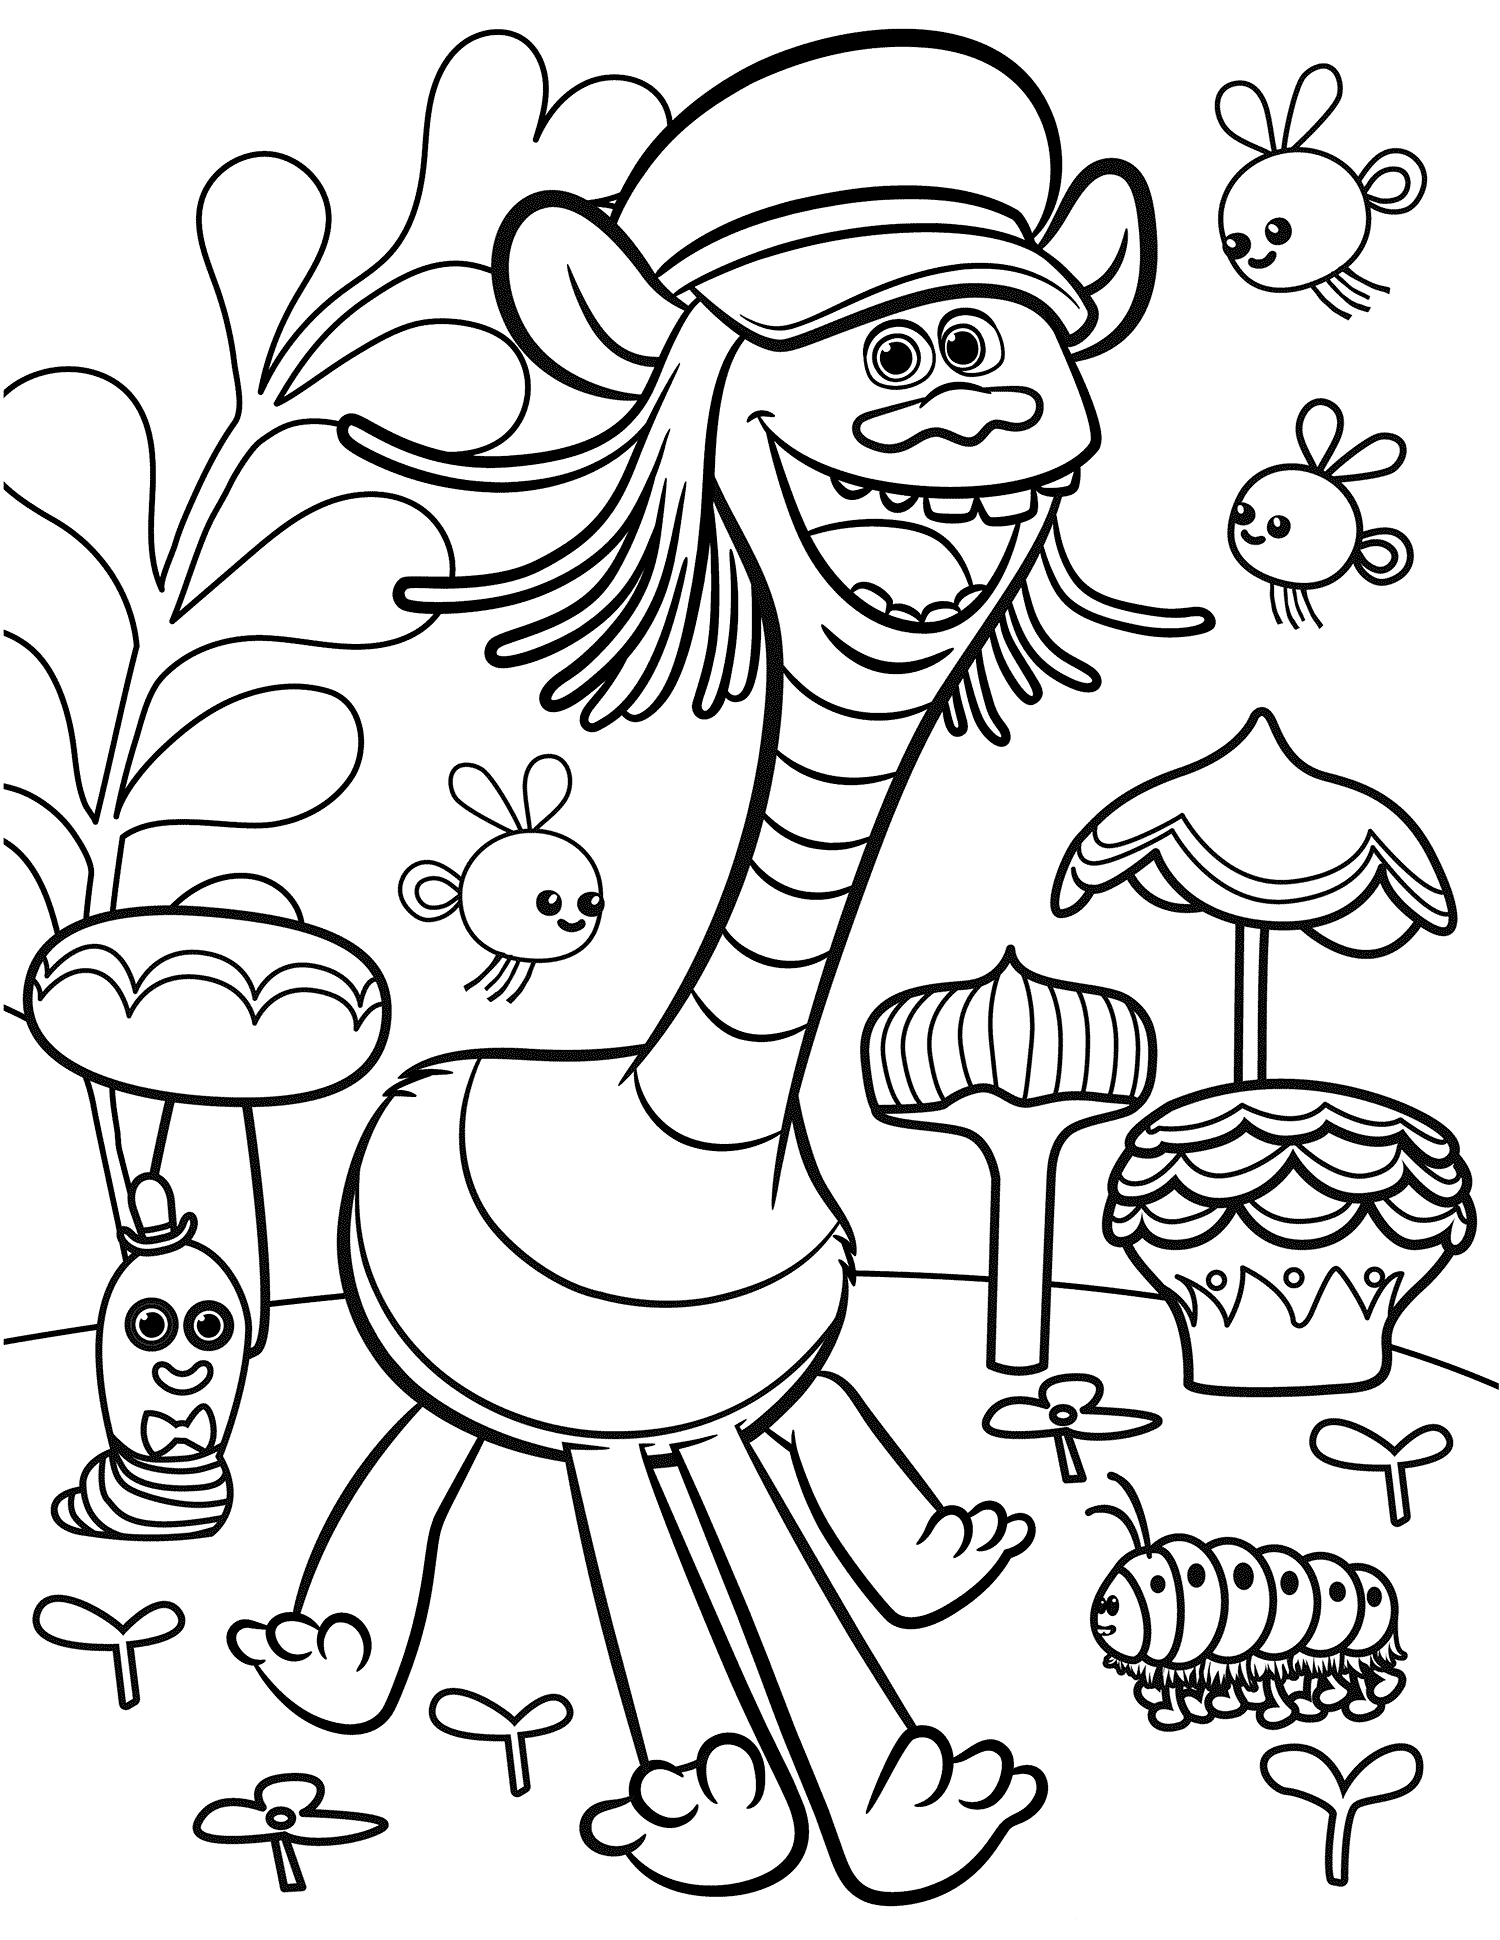 Trolls movie coloring pages best coloring pages for kids for Coloring pages toddler